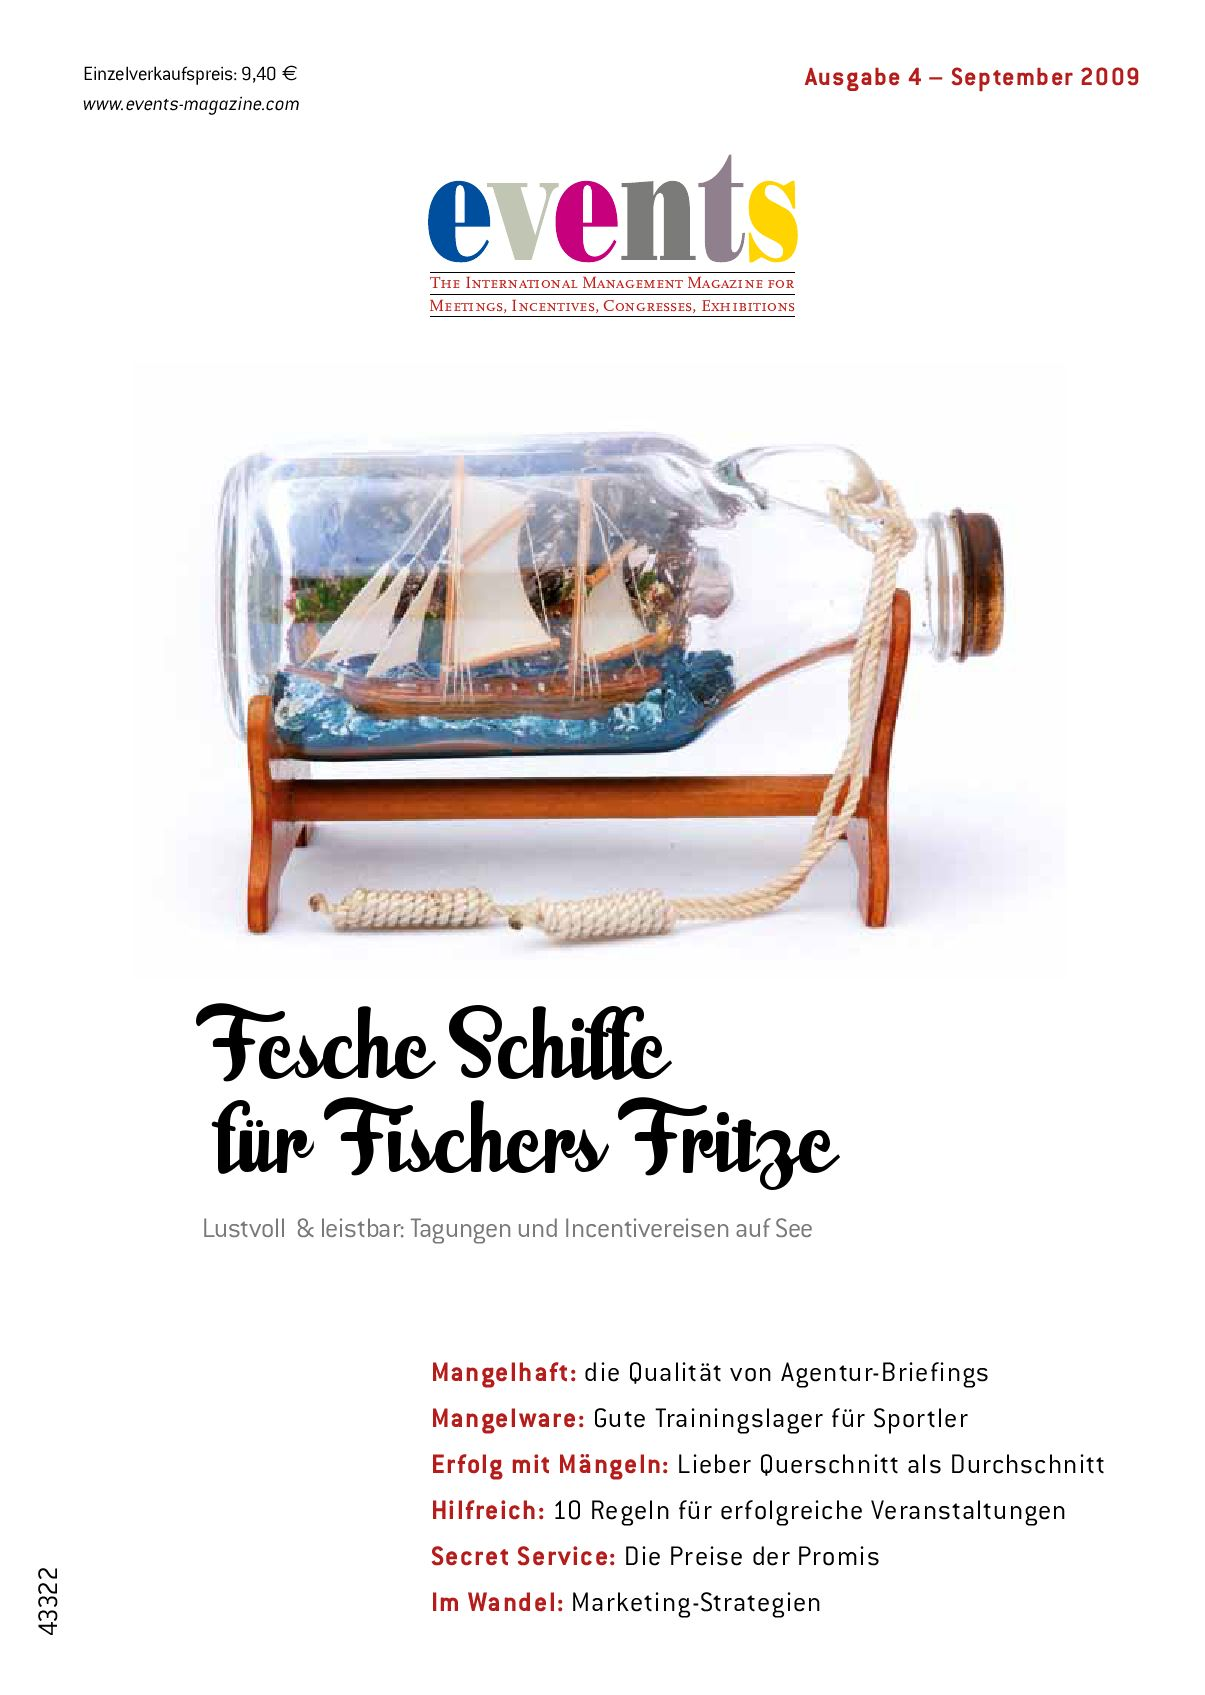 Swa Schnelle Mediterrane Küche Bad Schwalbach Events Magazine 04 2009 By Events Magazine Issuu